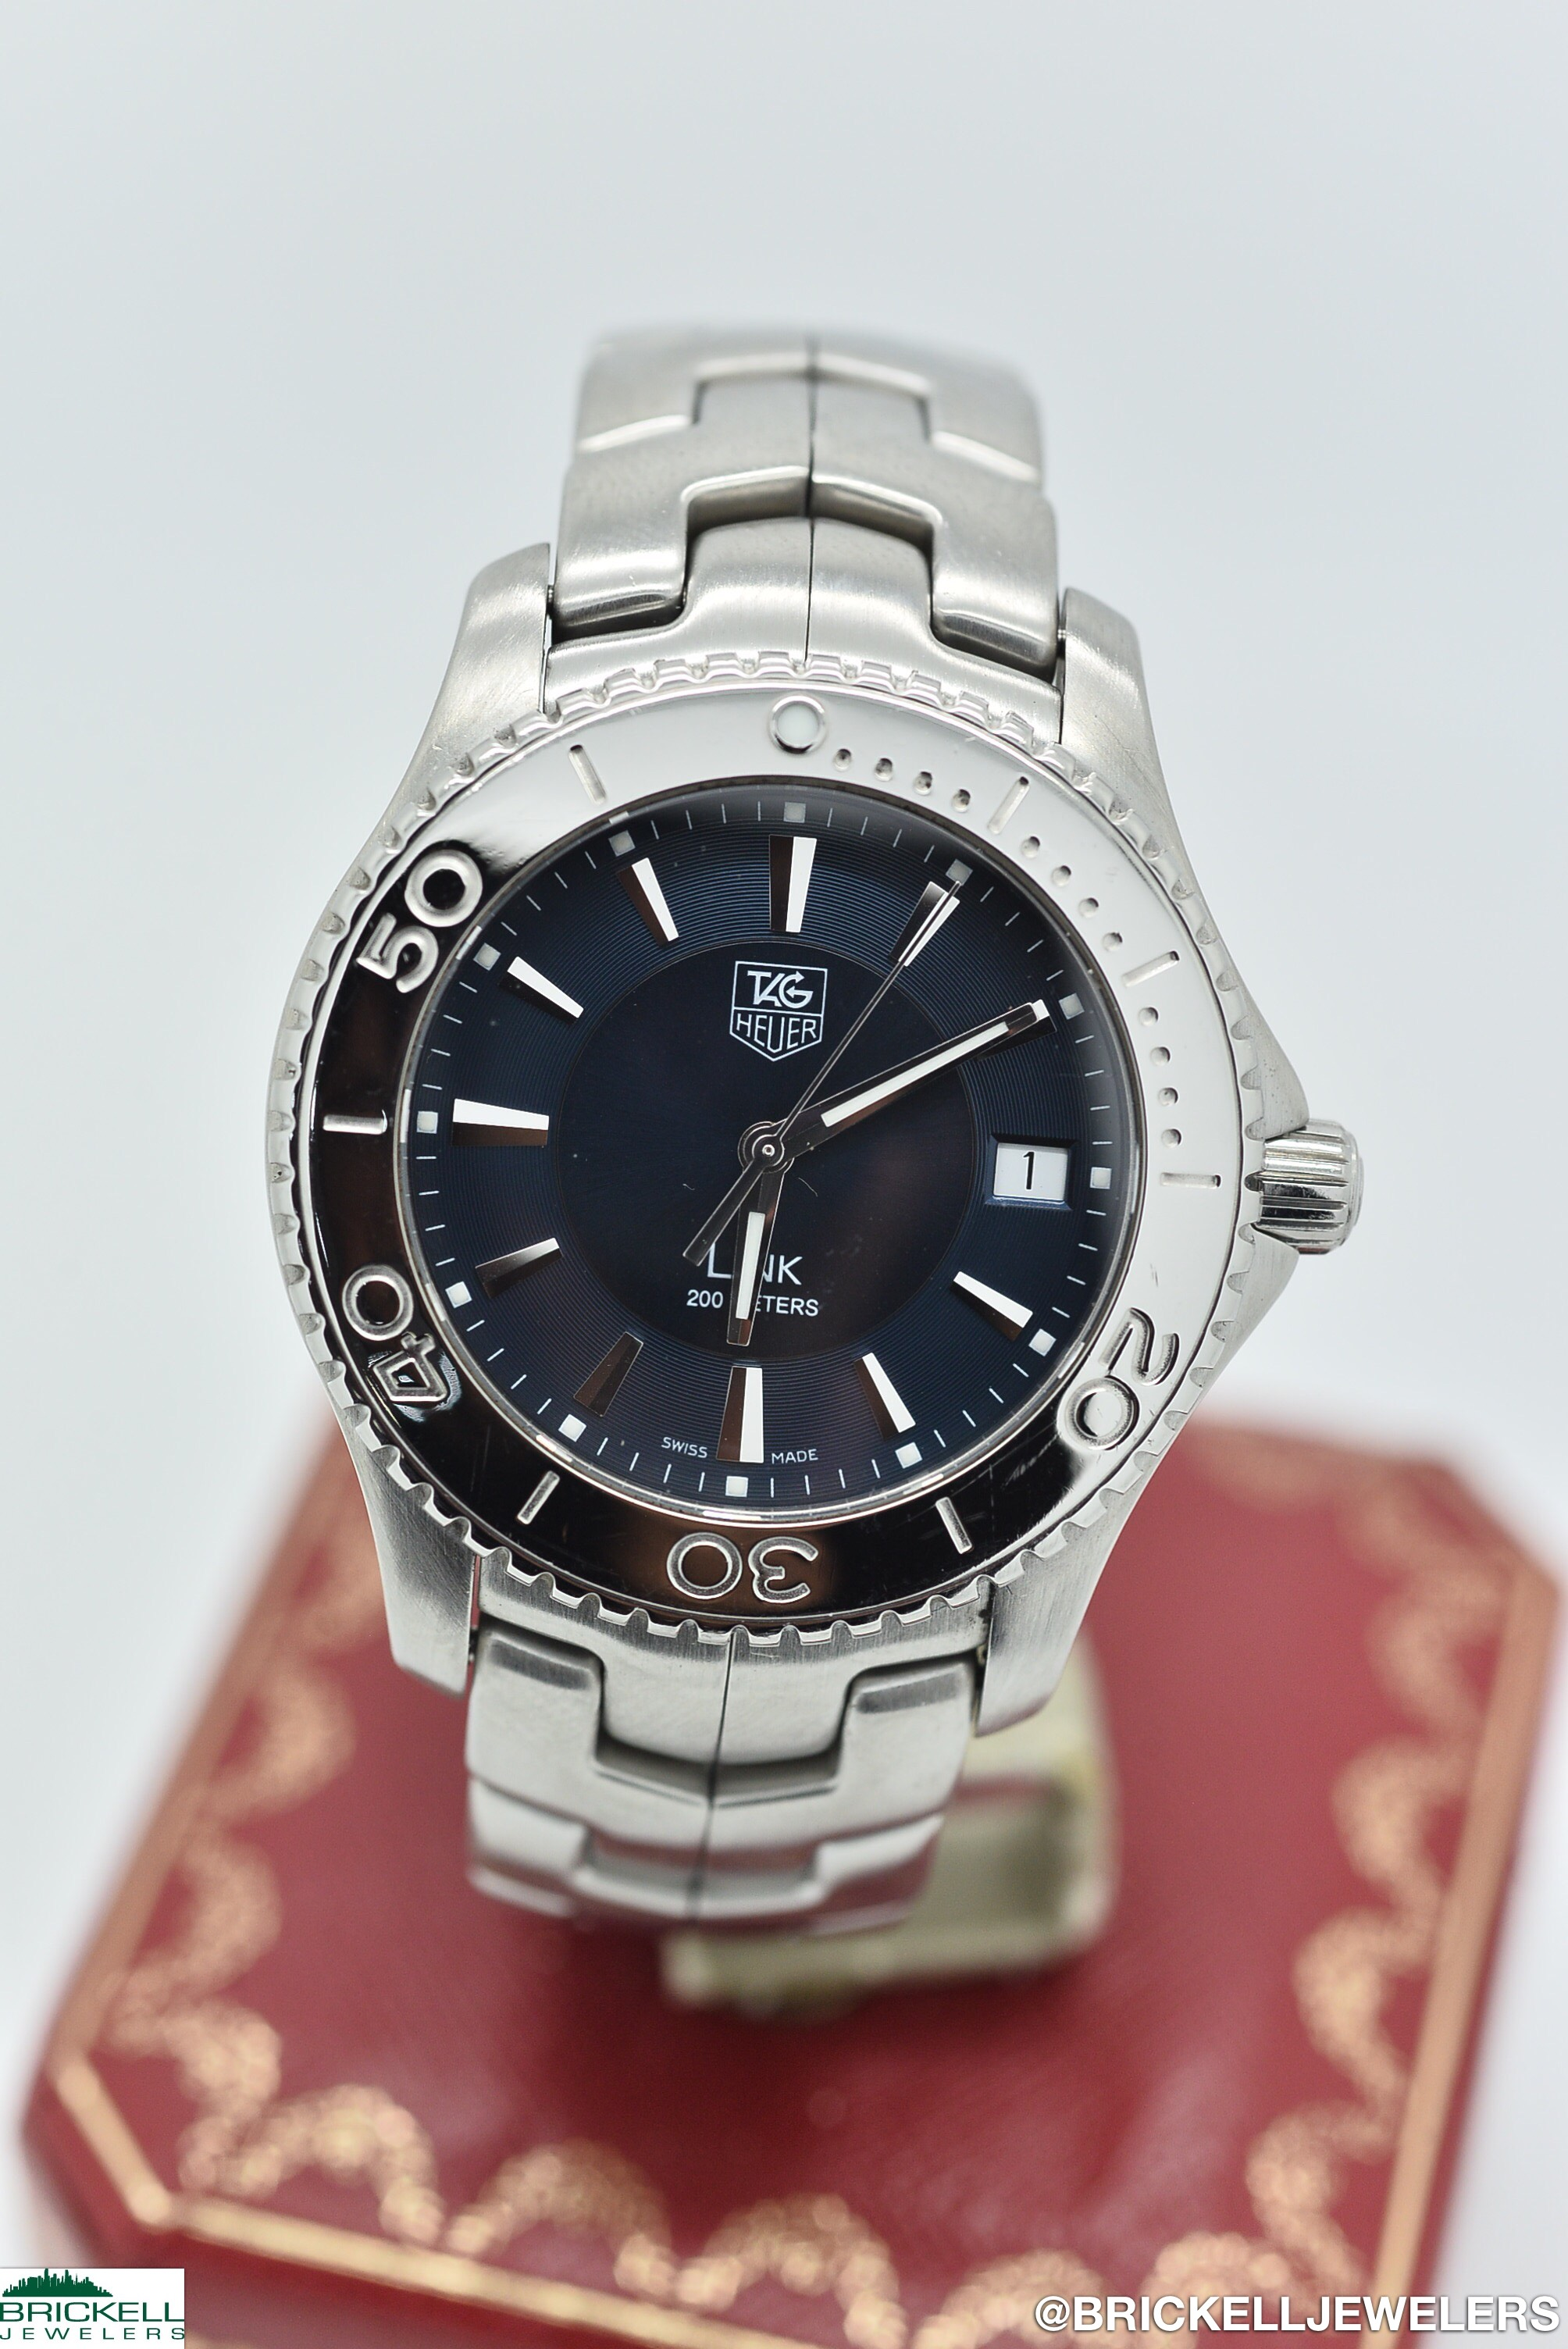 TAG HEUER	LINK	WJ1112	BLUE					Stainless Steel			Quartz (Battery)	WATCH